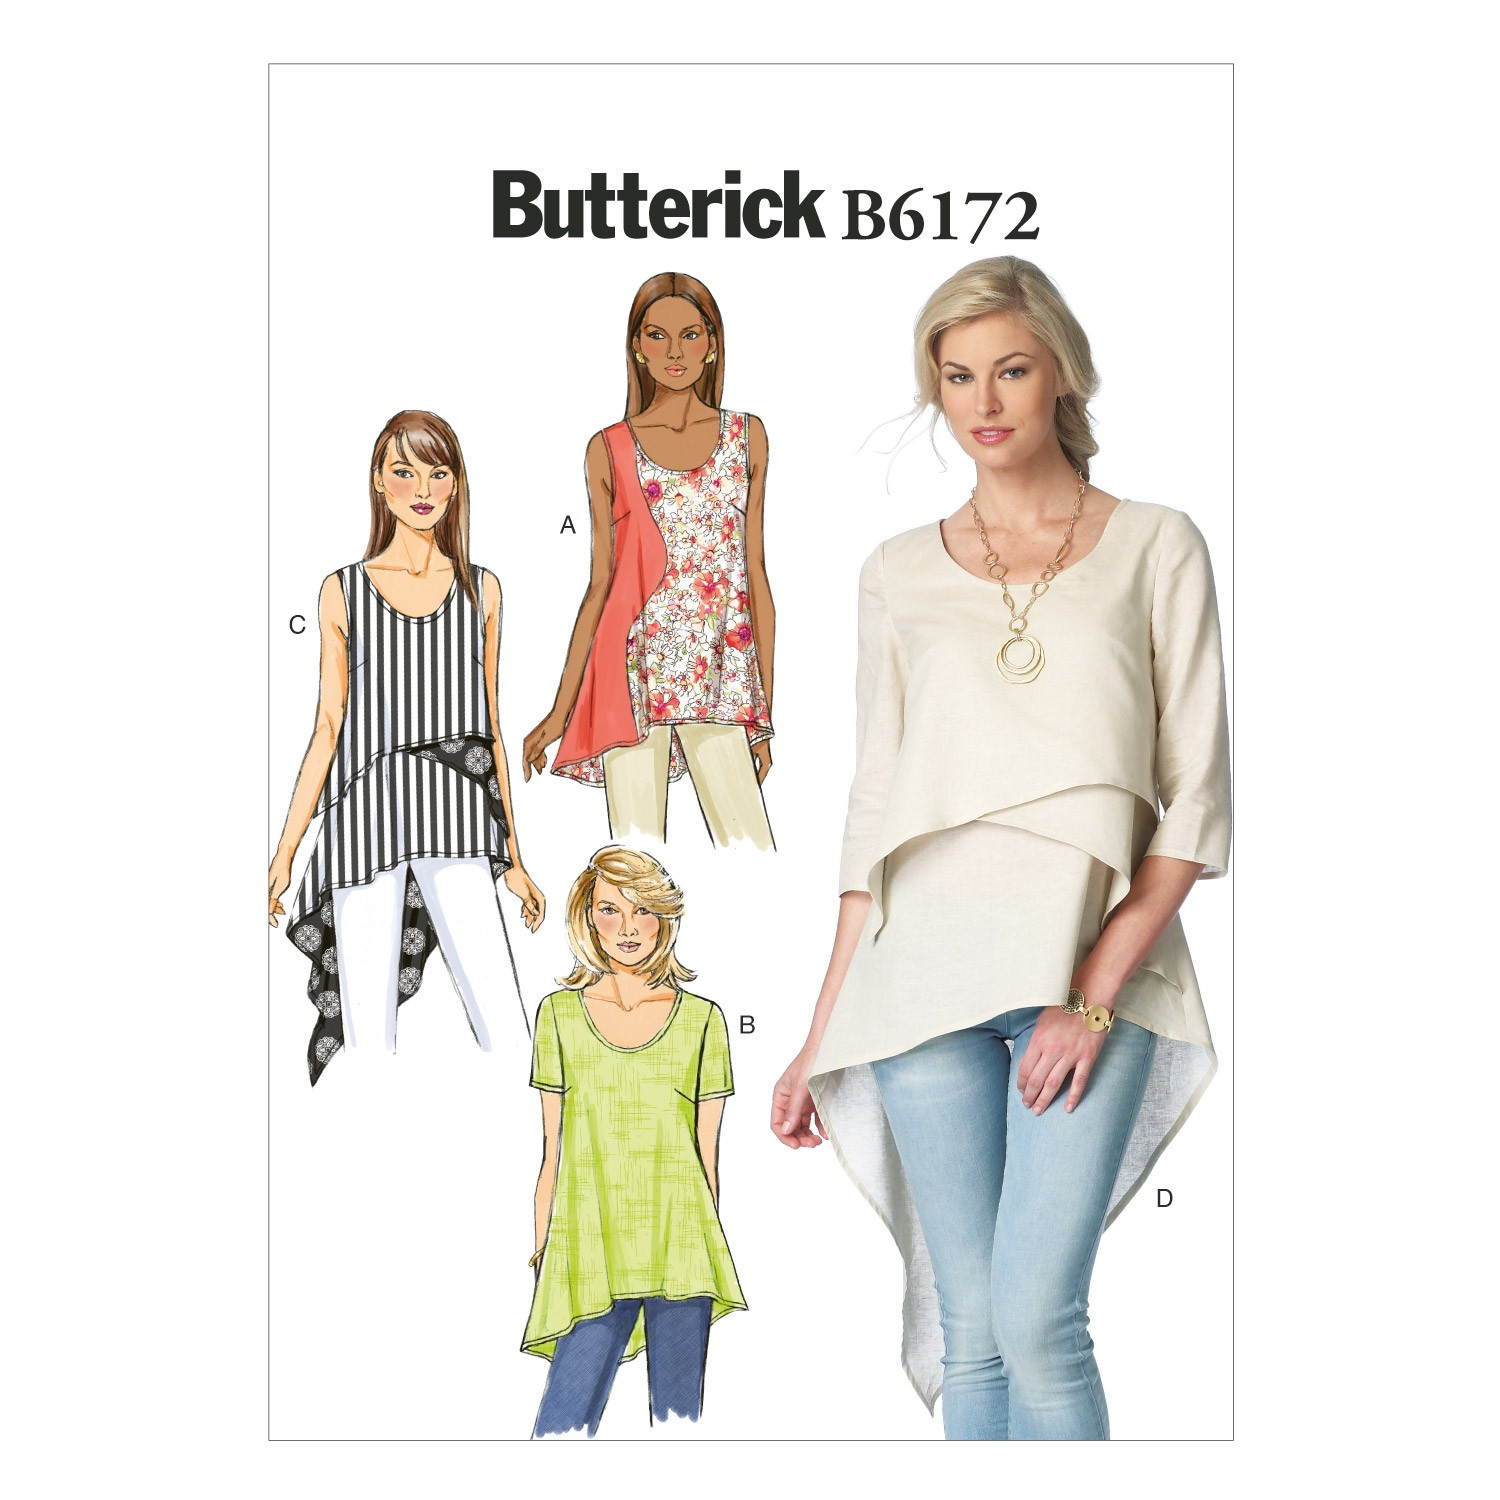 Butterick Sewing Pattern 6172 Misses' Loose Fitting Top & Tunic